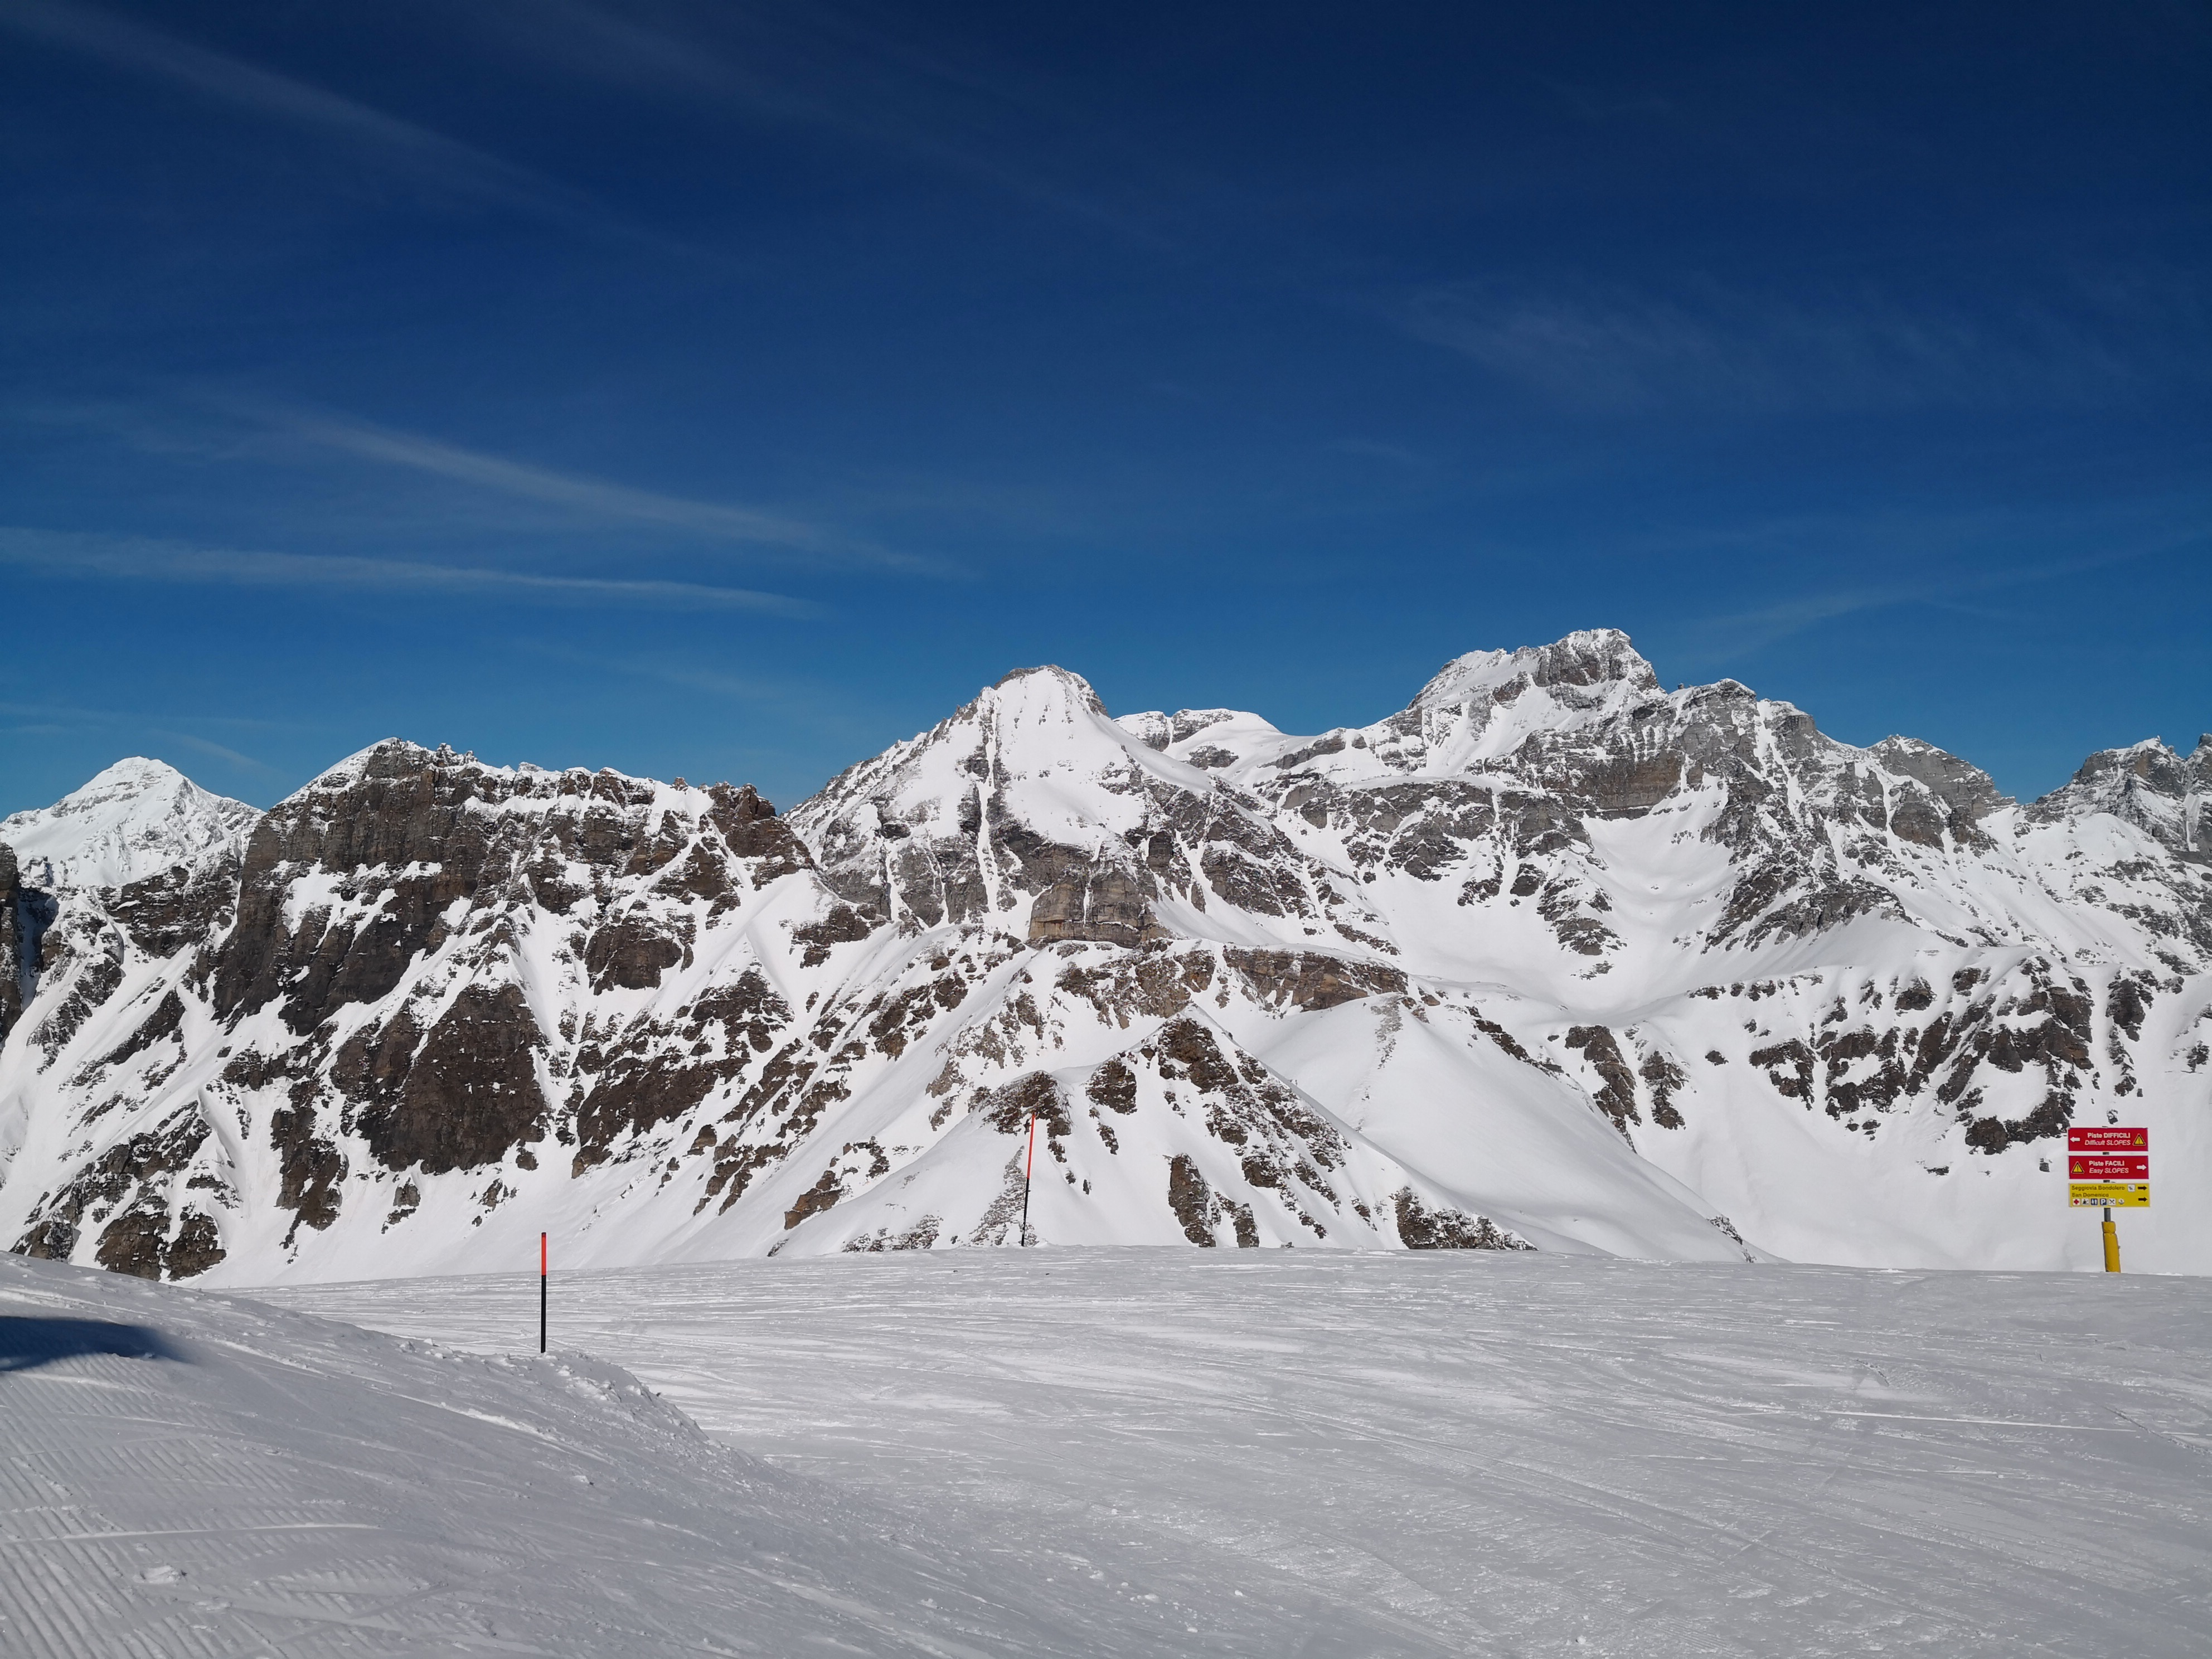 San Domenico Ski